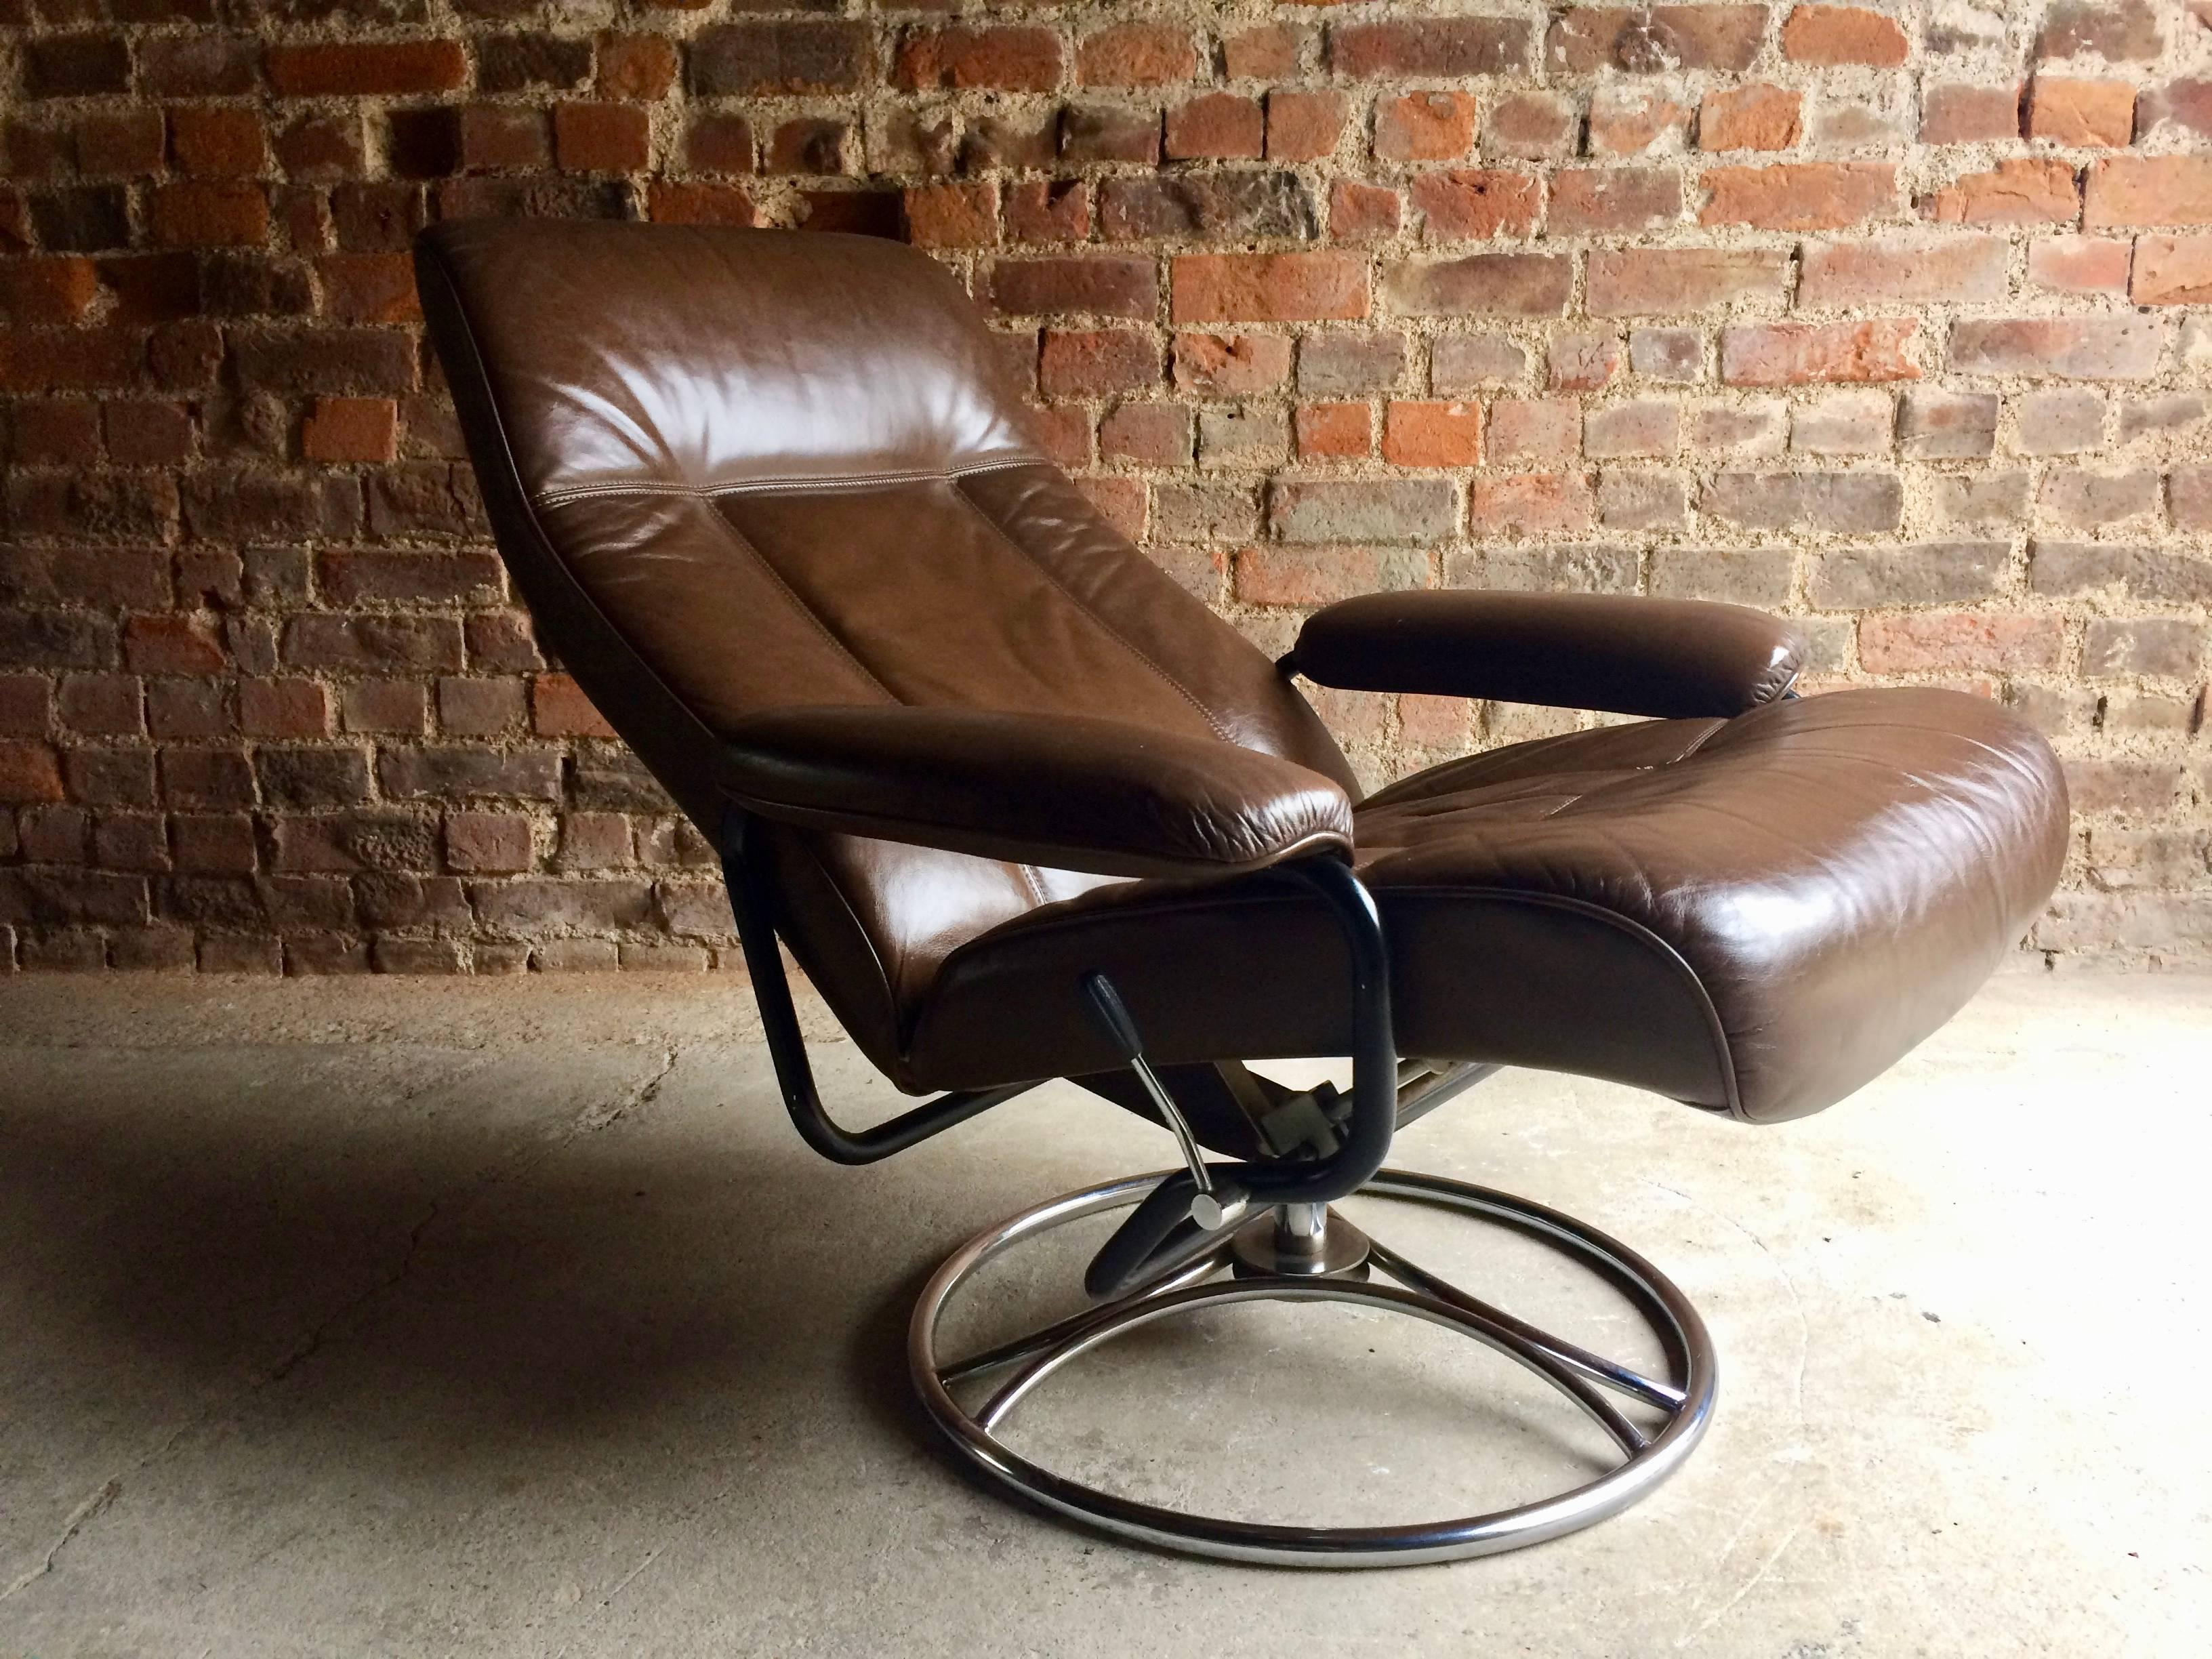 A Magnificent Mid Century, 1970s, Swedish Leather Reclining Swivel Armchair  With Chromed Metal